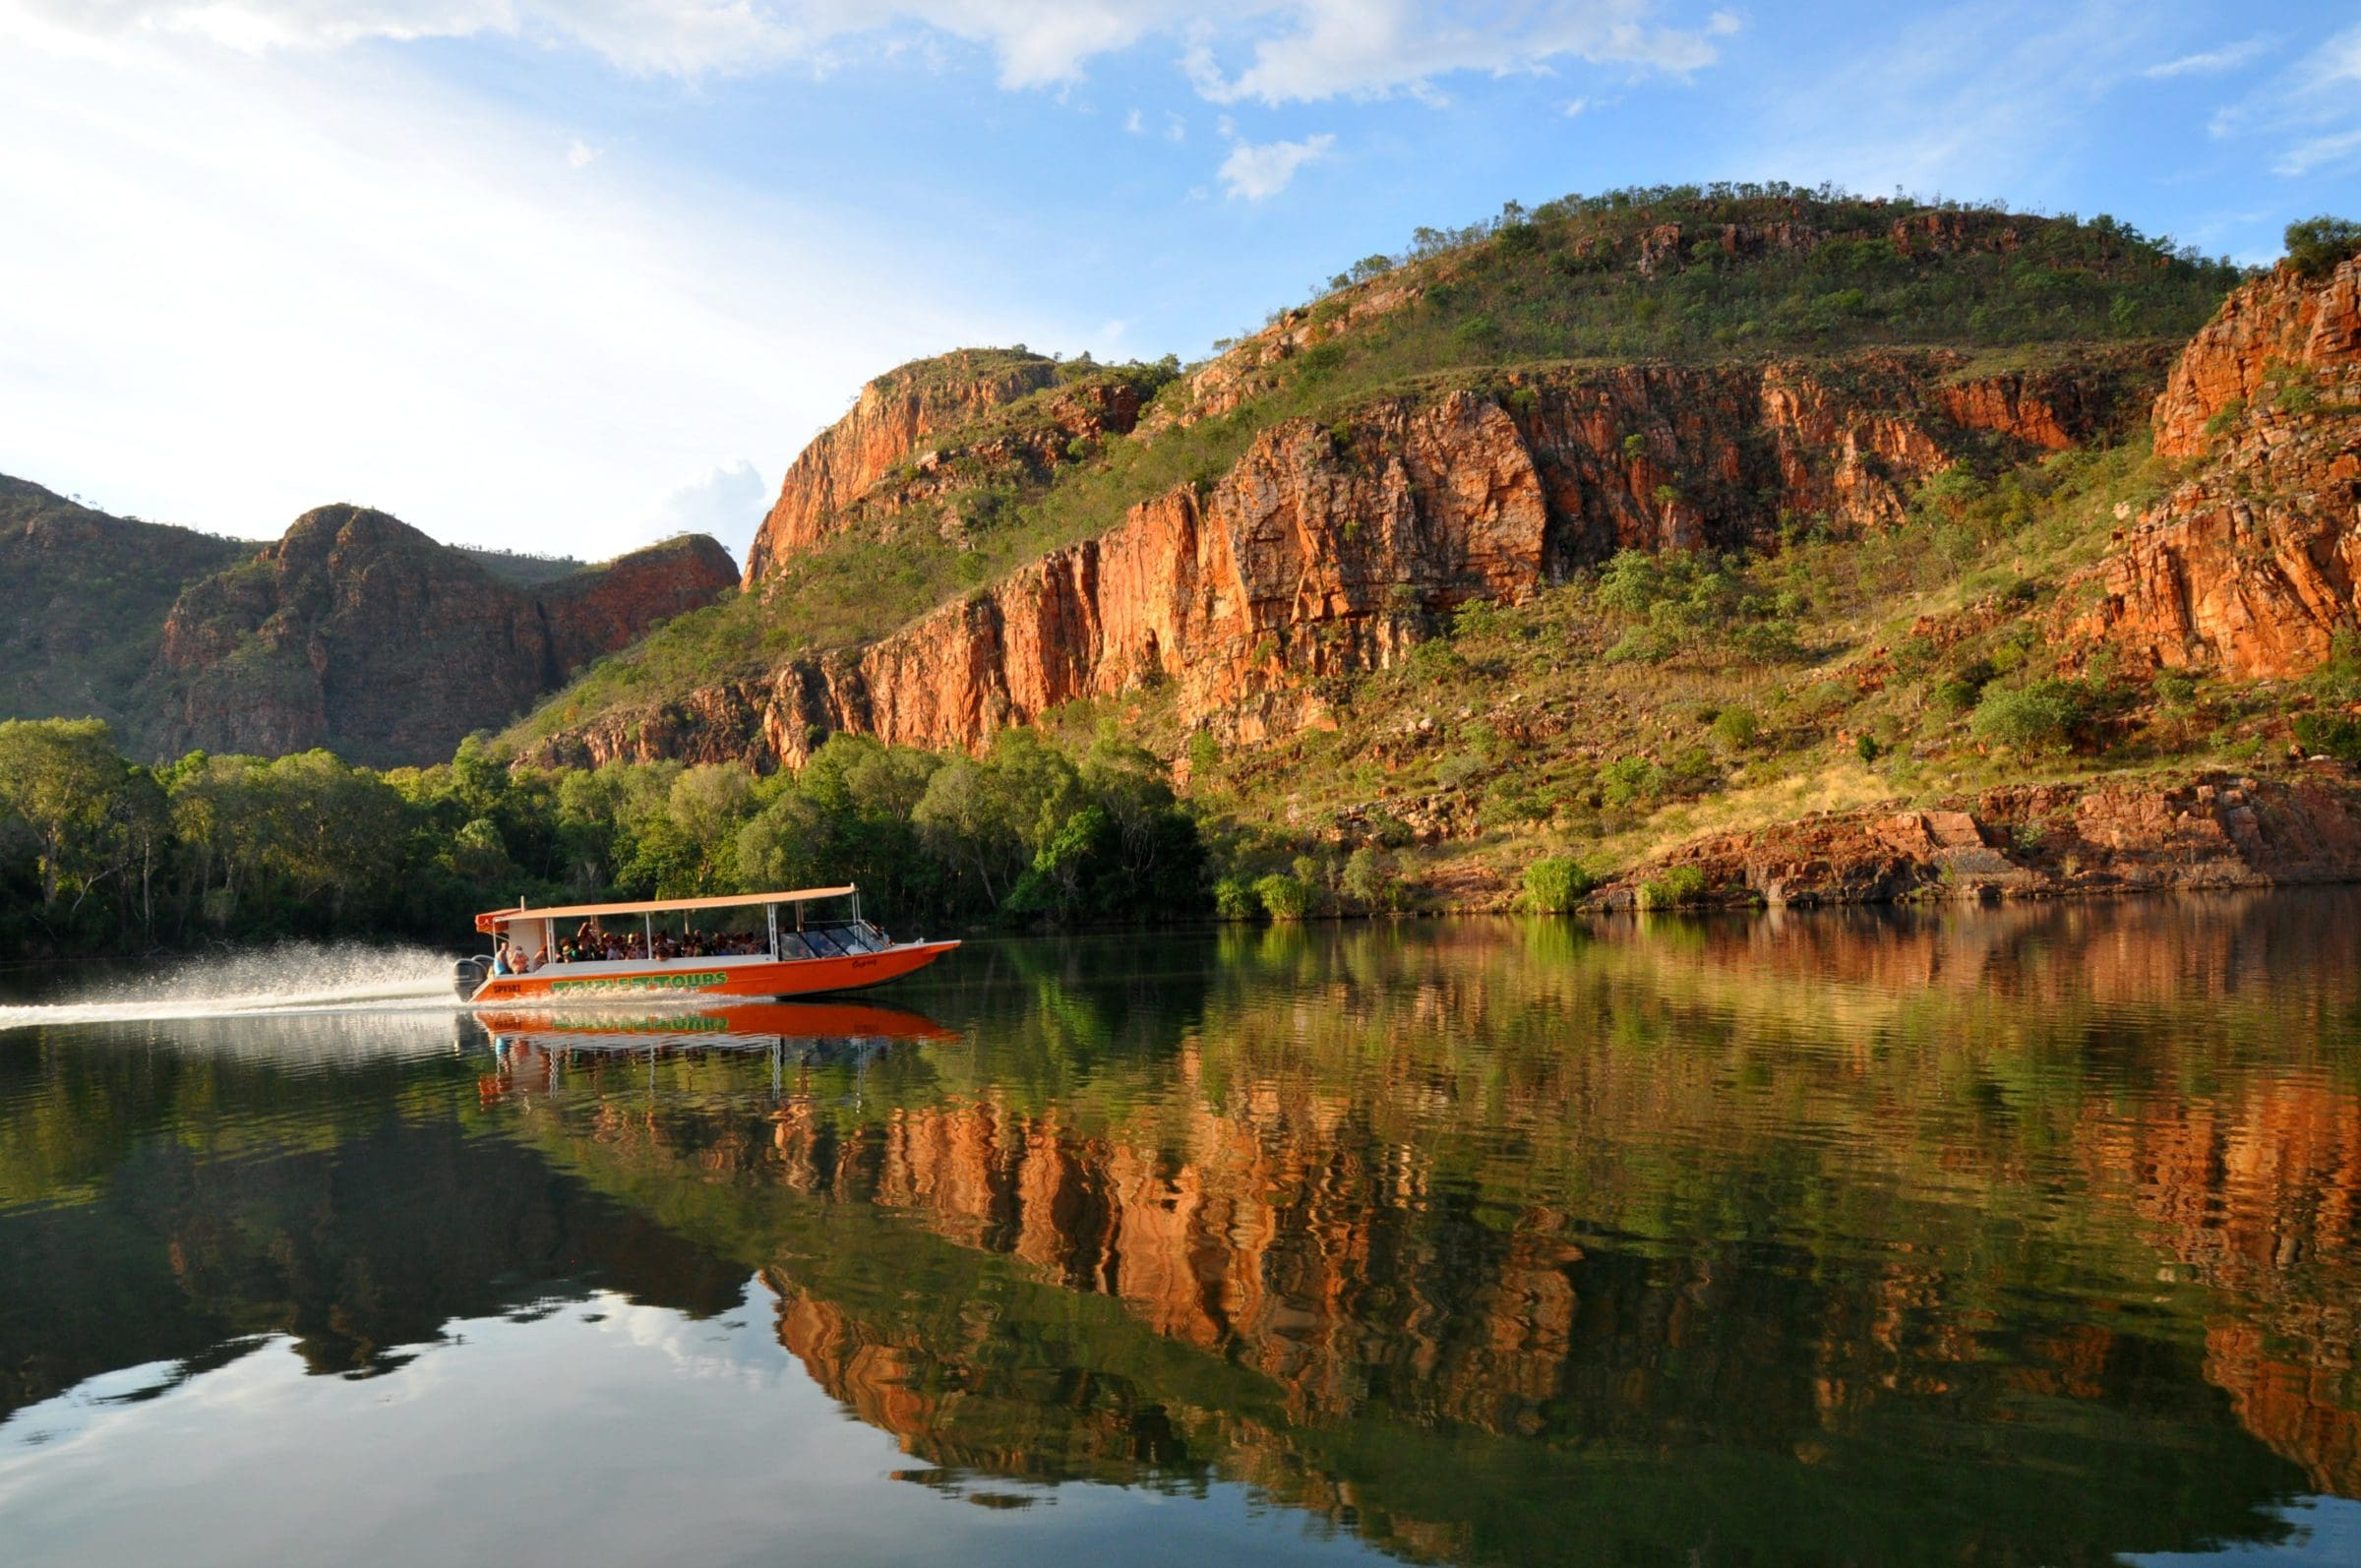 ORD RIVER & LAKE ARGYLE SUNSET CRUISE